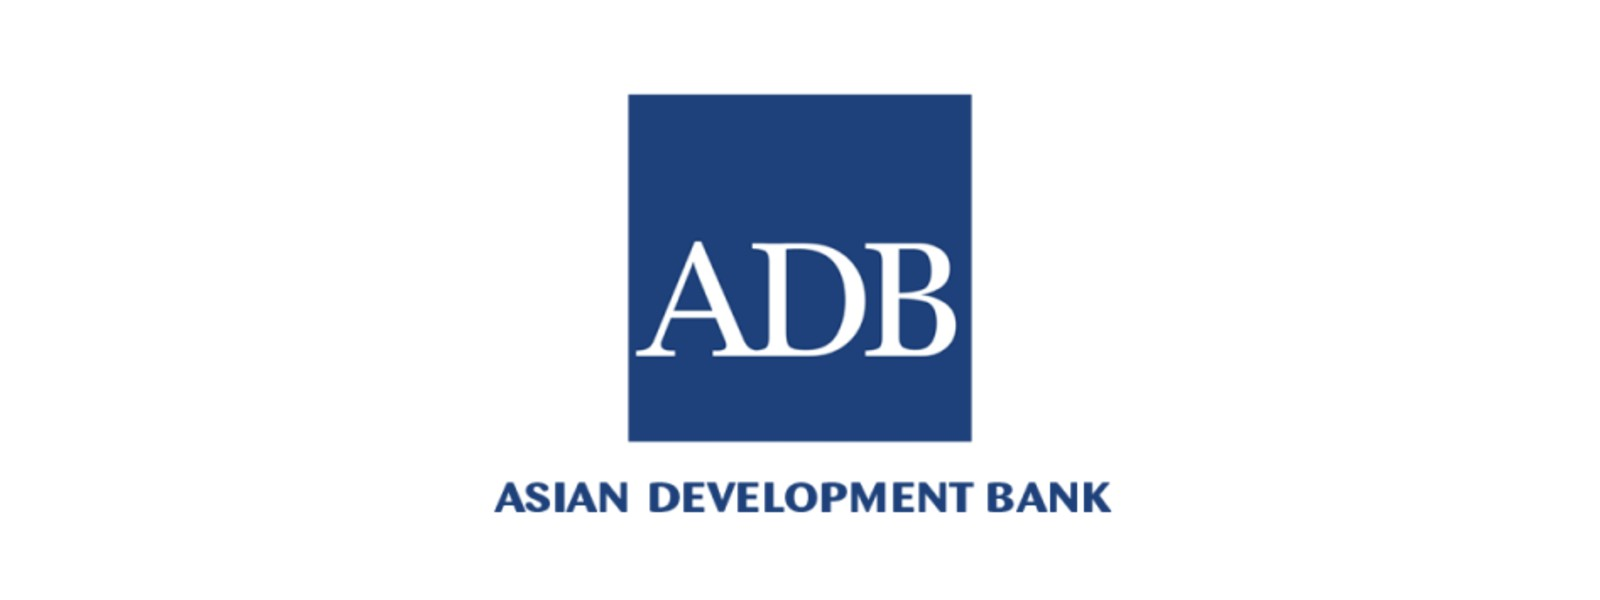 Sri Lankan signs papers for $150 Mn loan from ADB for vaccine purchasing & related expenses